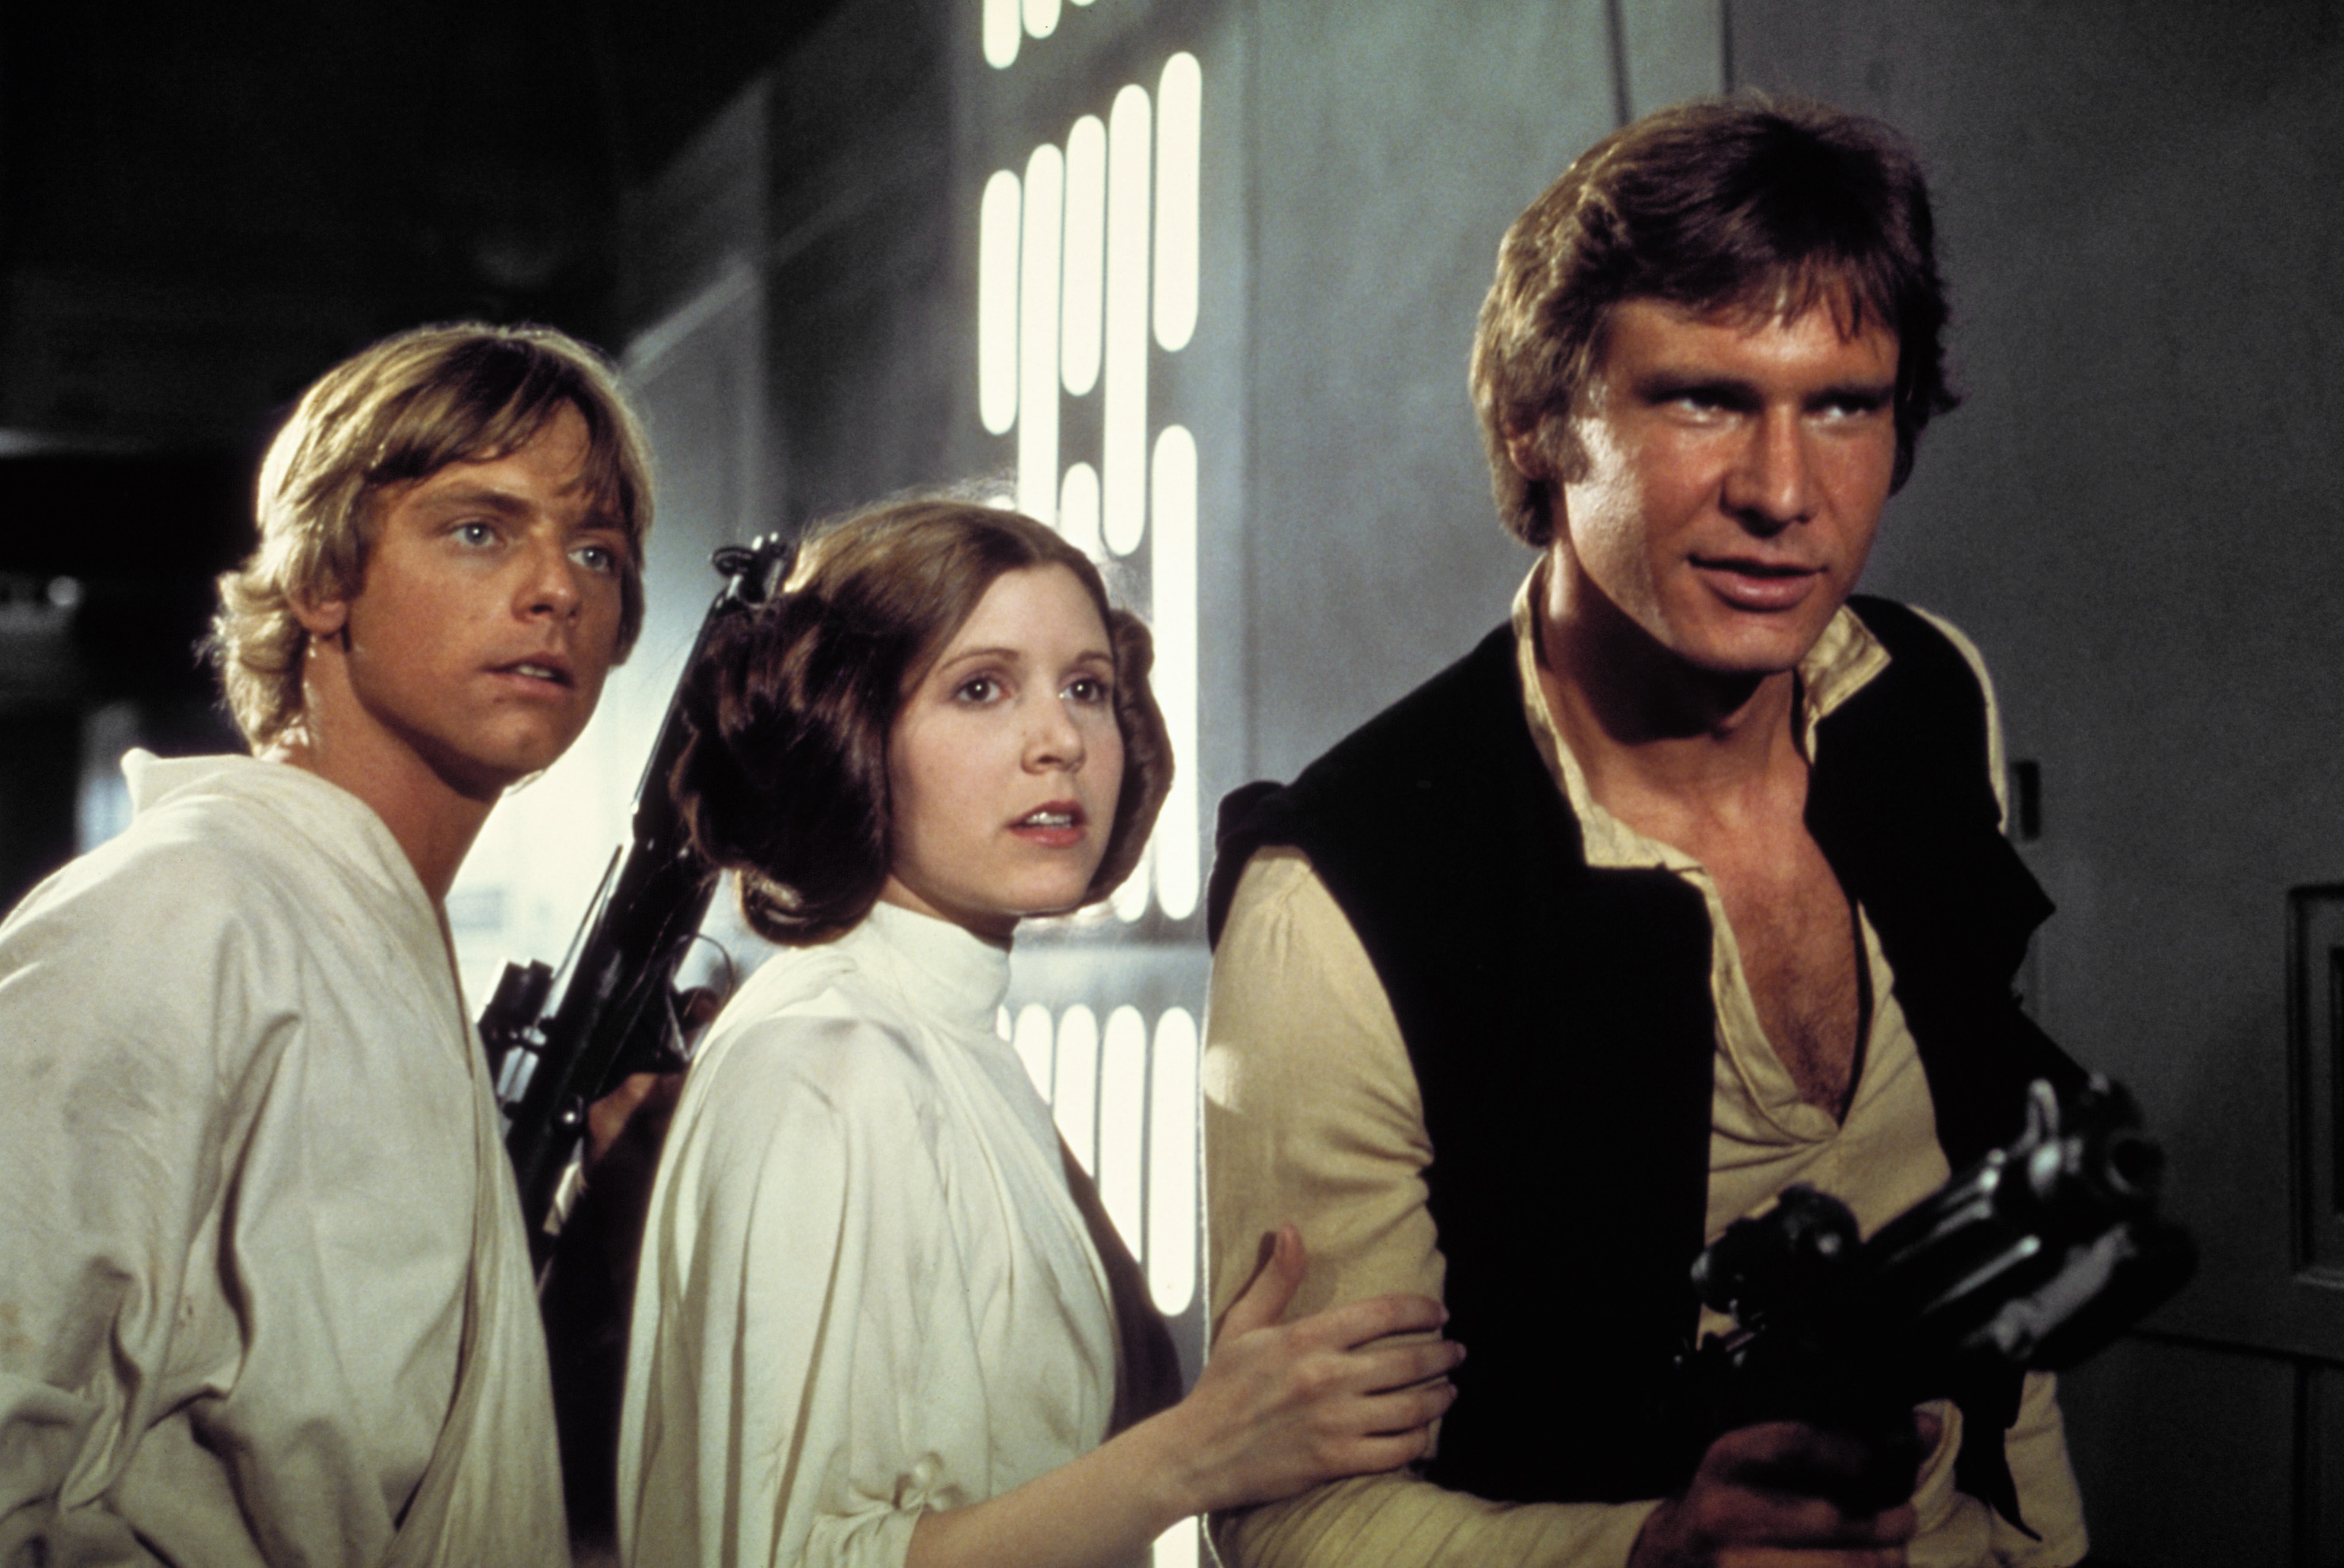 Mark Hamill, Carrie Fisher, Harrison Ford in Star Wars (1977)